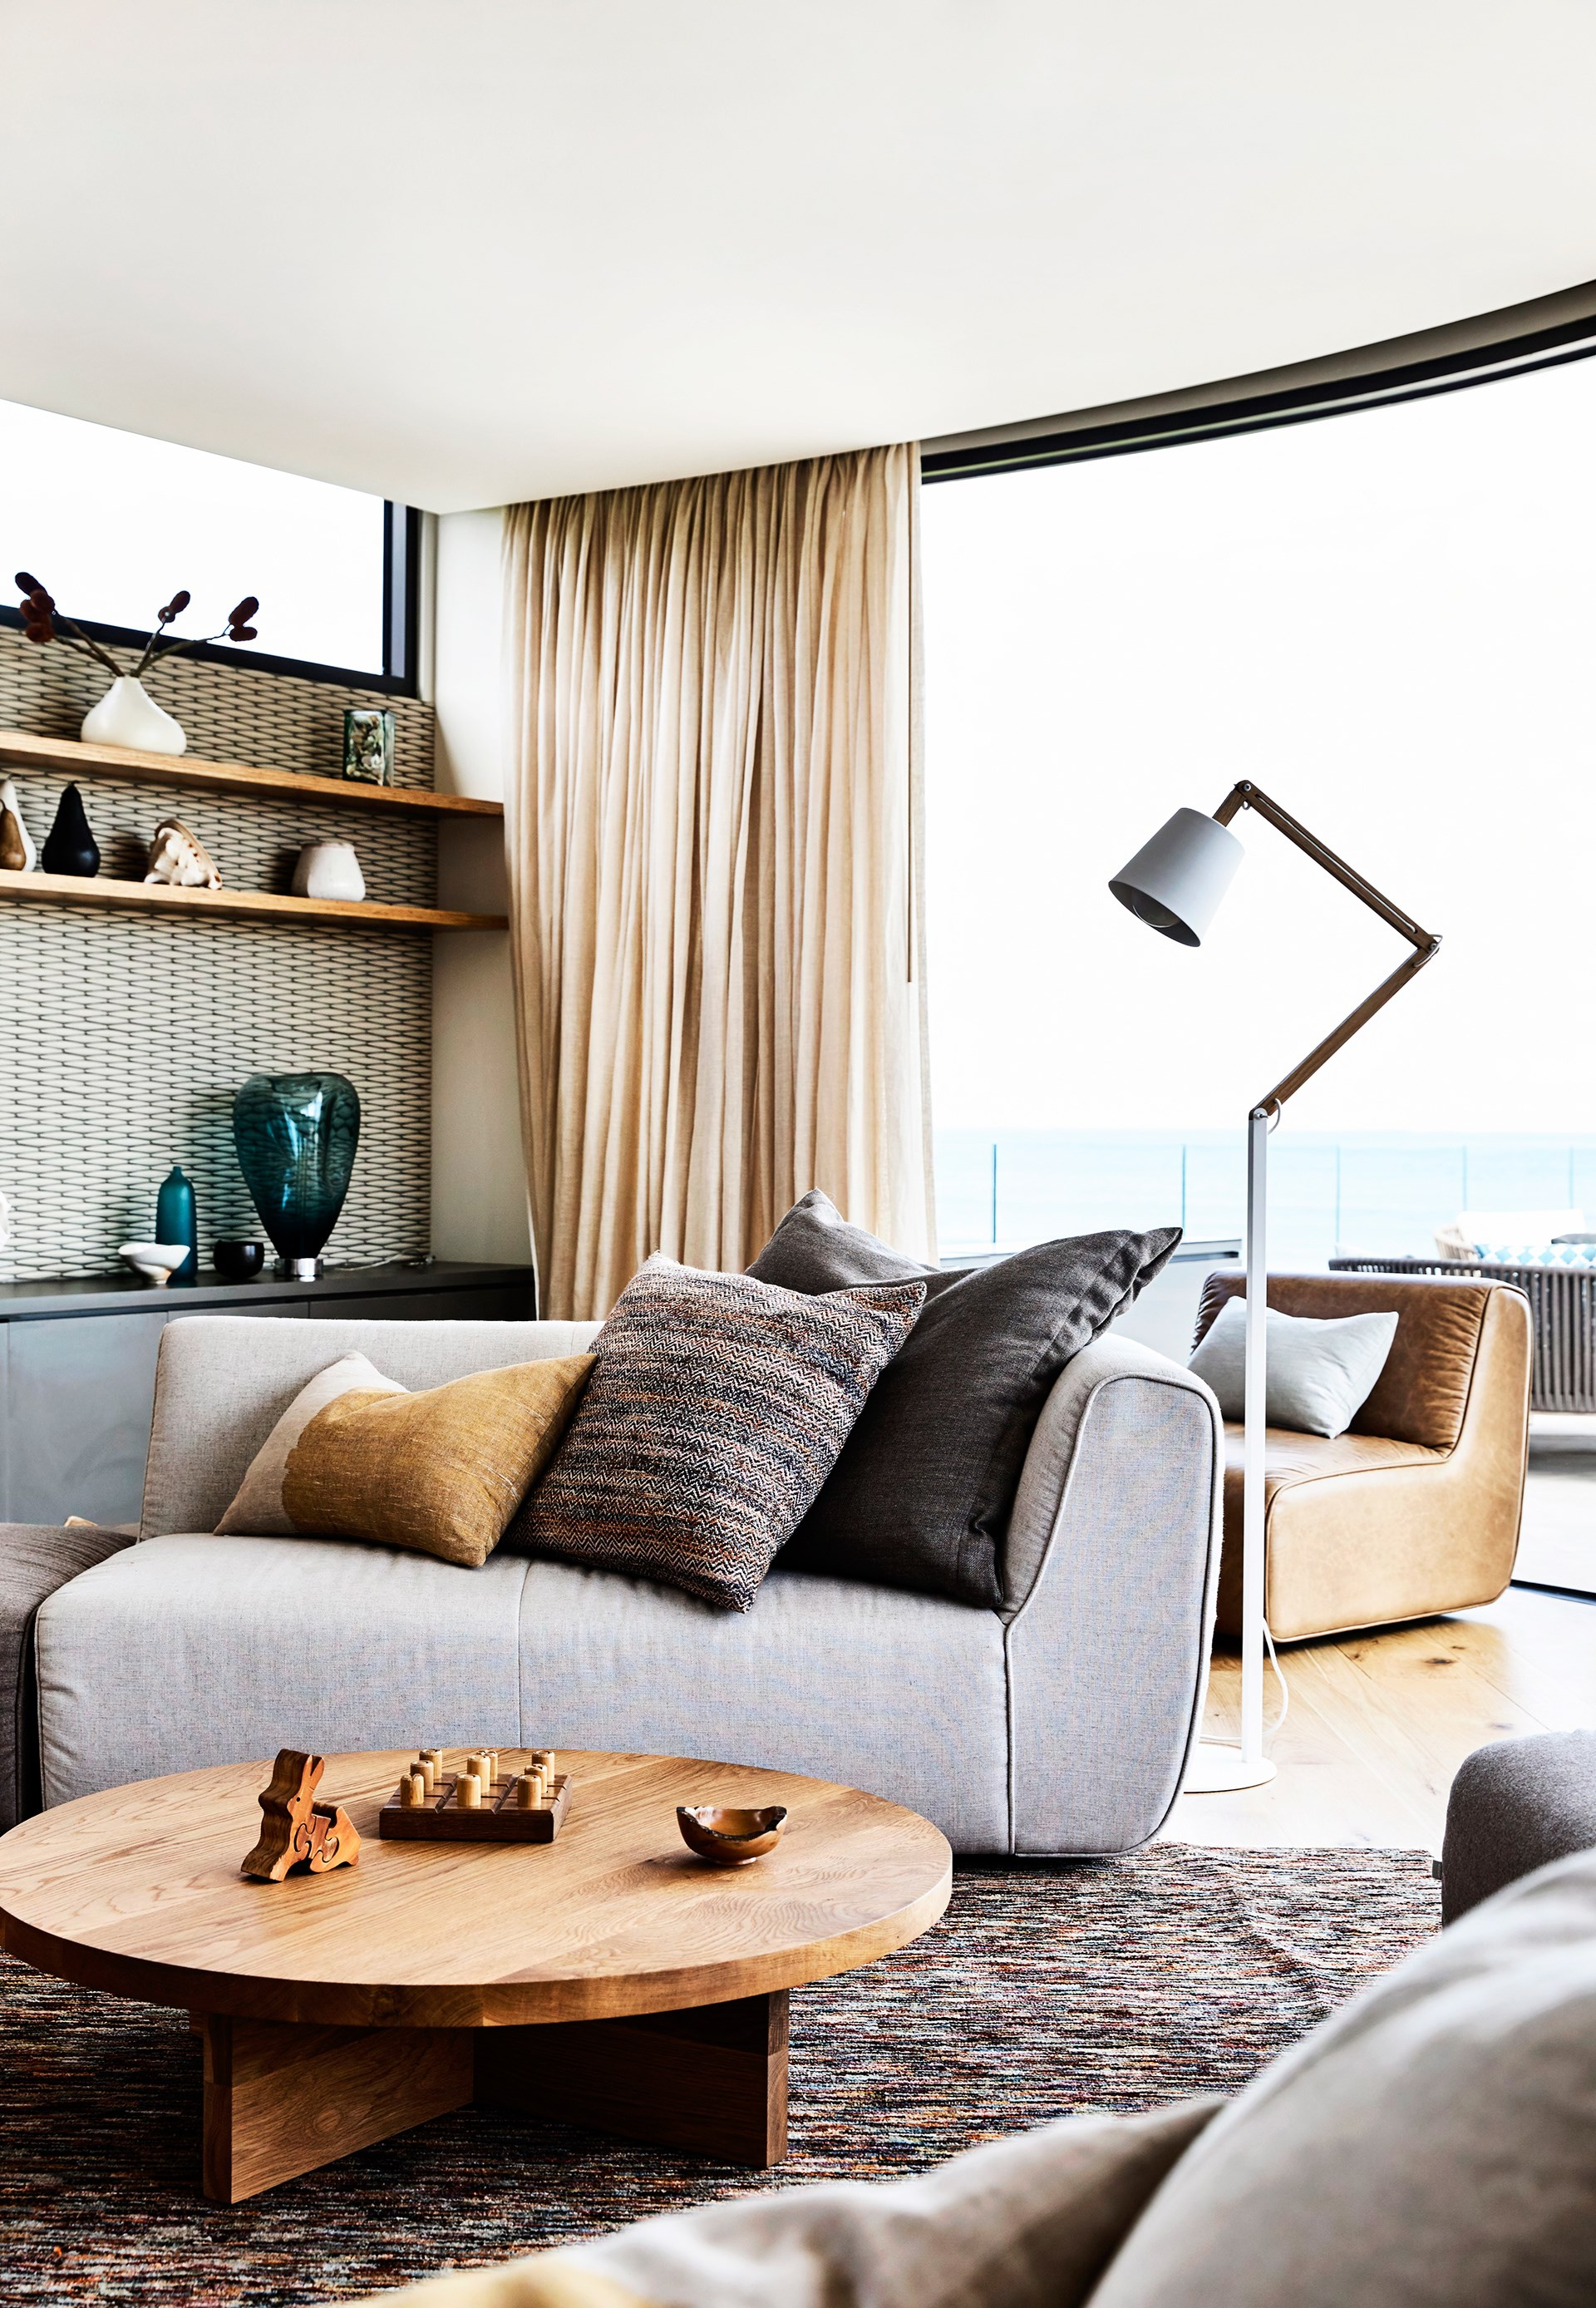 With a sprawling view over the Bass Strait, it would be hard not to relax in this [Great Ocean Road retreat](http://www.homestolove.com.au/a-great-ocean-road-getaway-inspired-by-nature-3863). Neutral tones and soft textures and nature-inspired finishes only add to the comfort. Photo: Derek Swalwell / Australian House & Garden